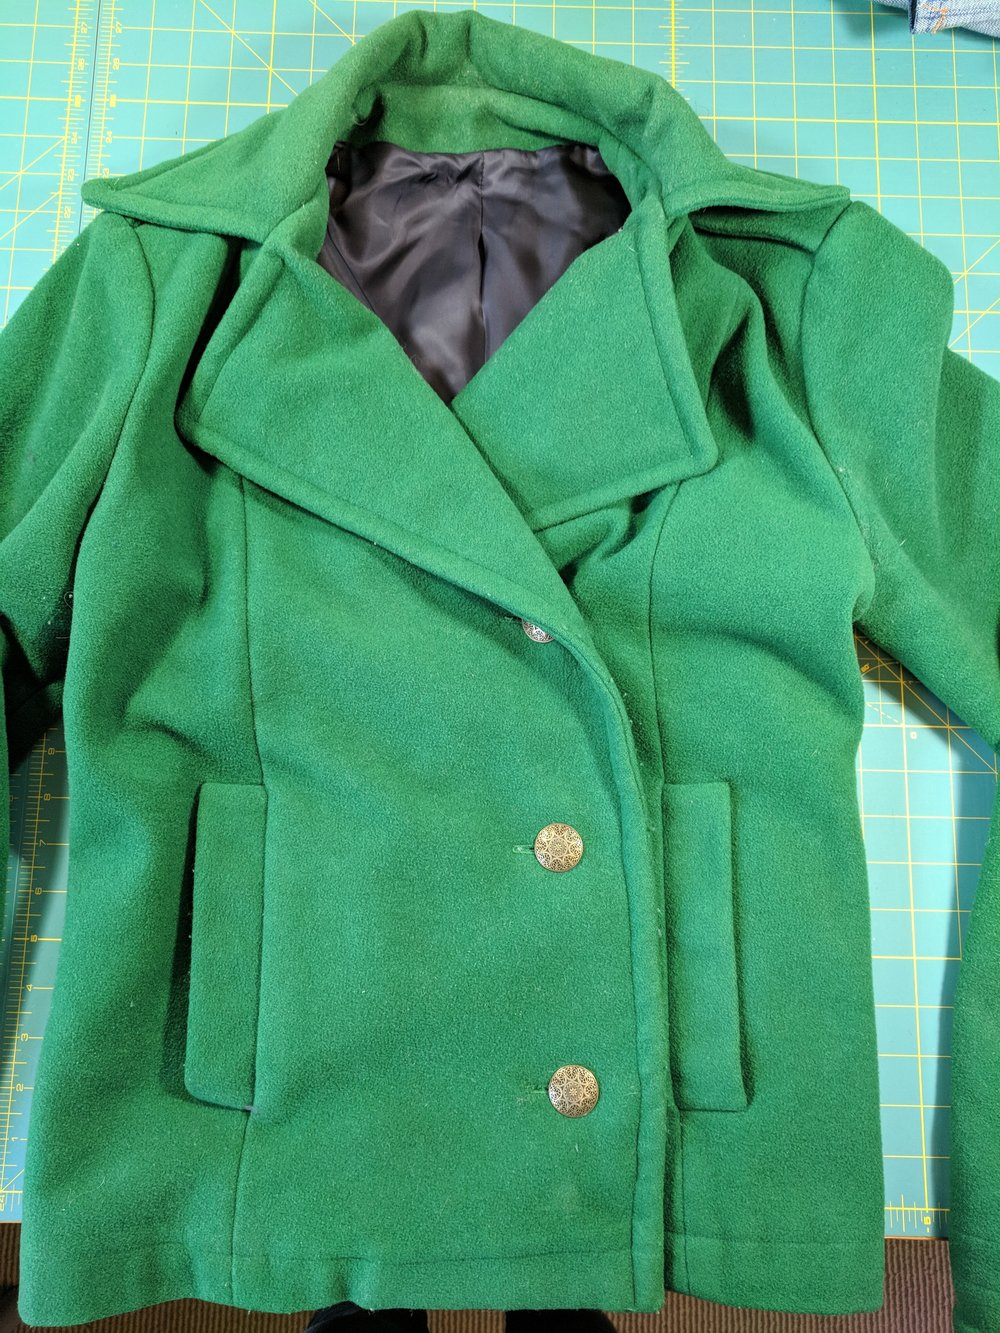 gee betty wool coat